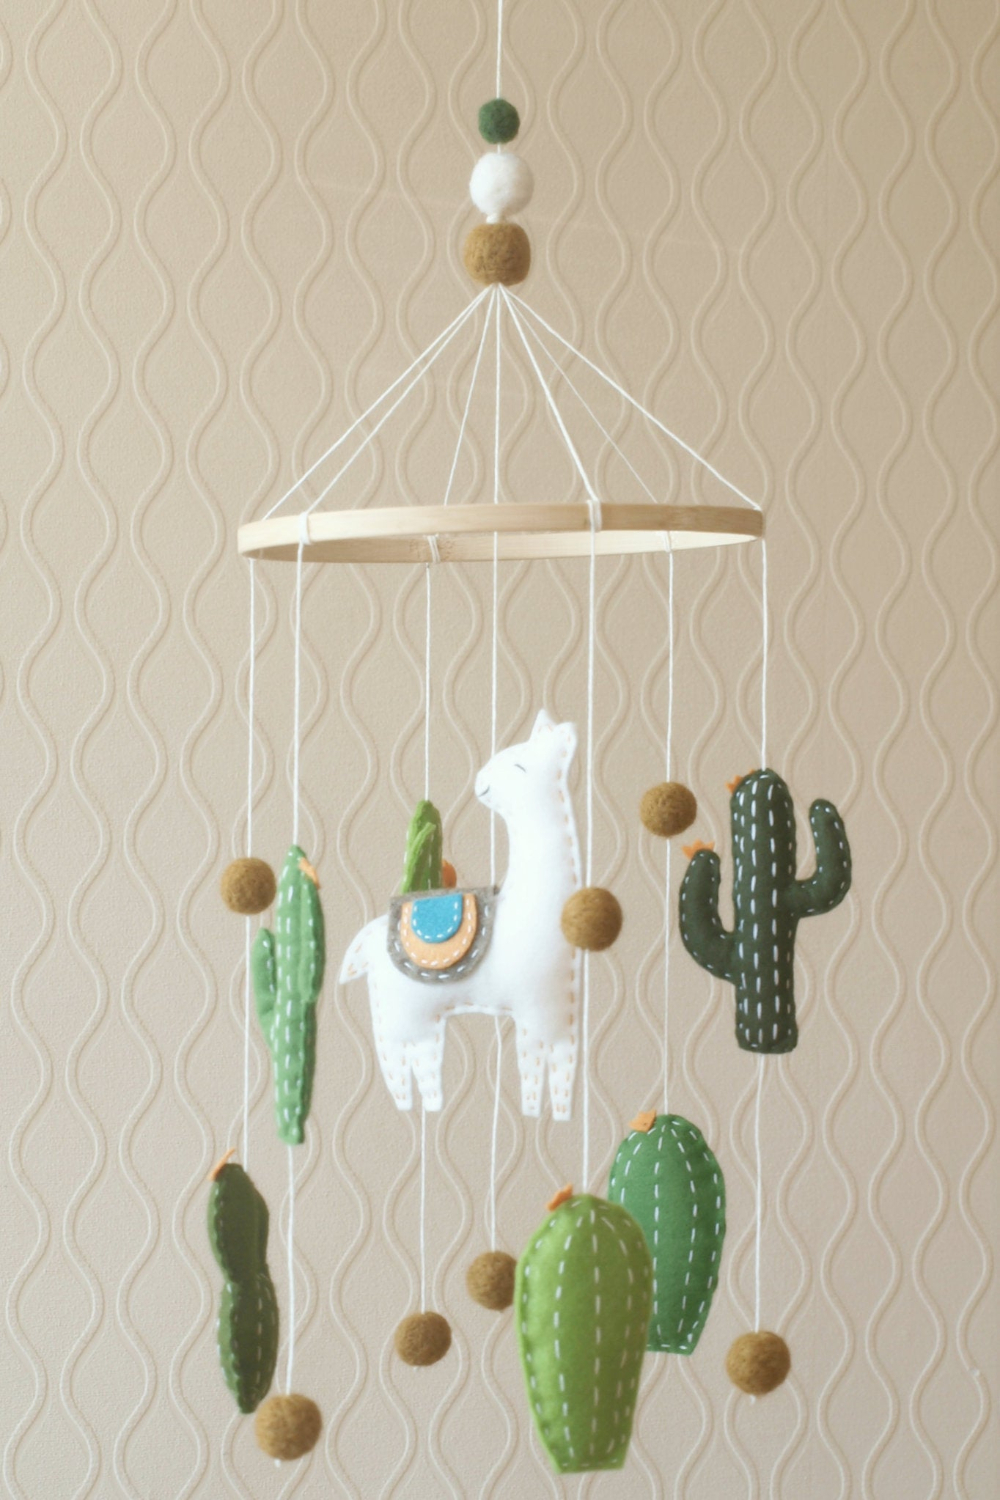 Perfect Cactus Trends Design Ideas For Kids Room To Have21